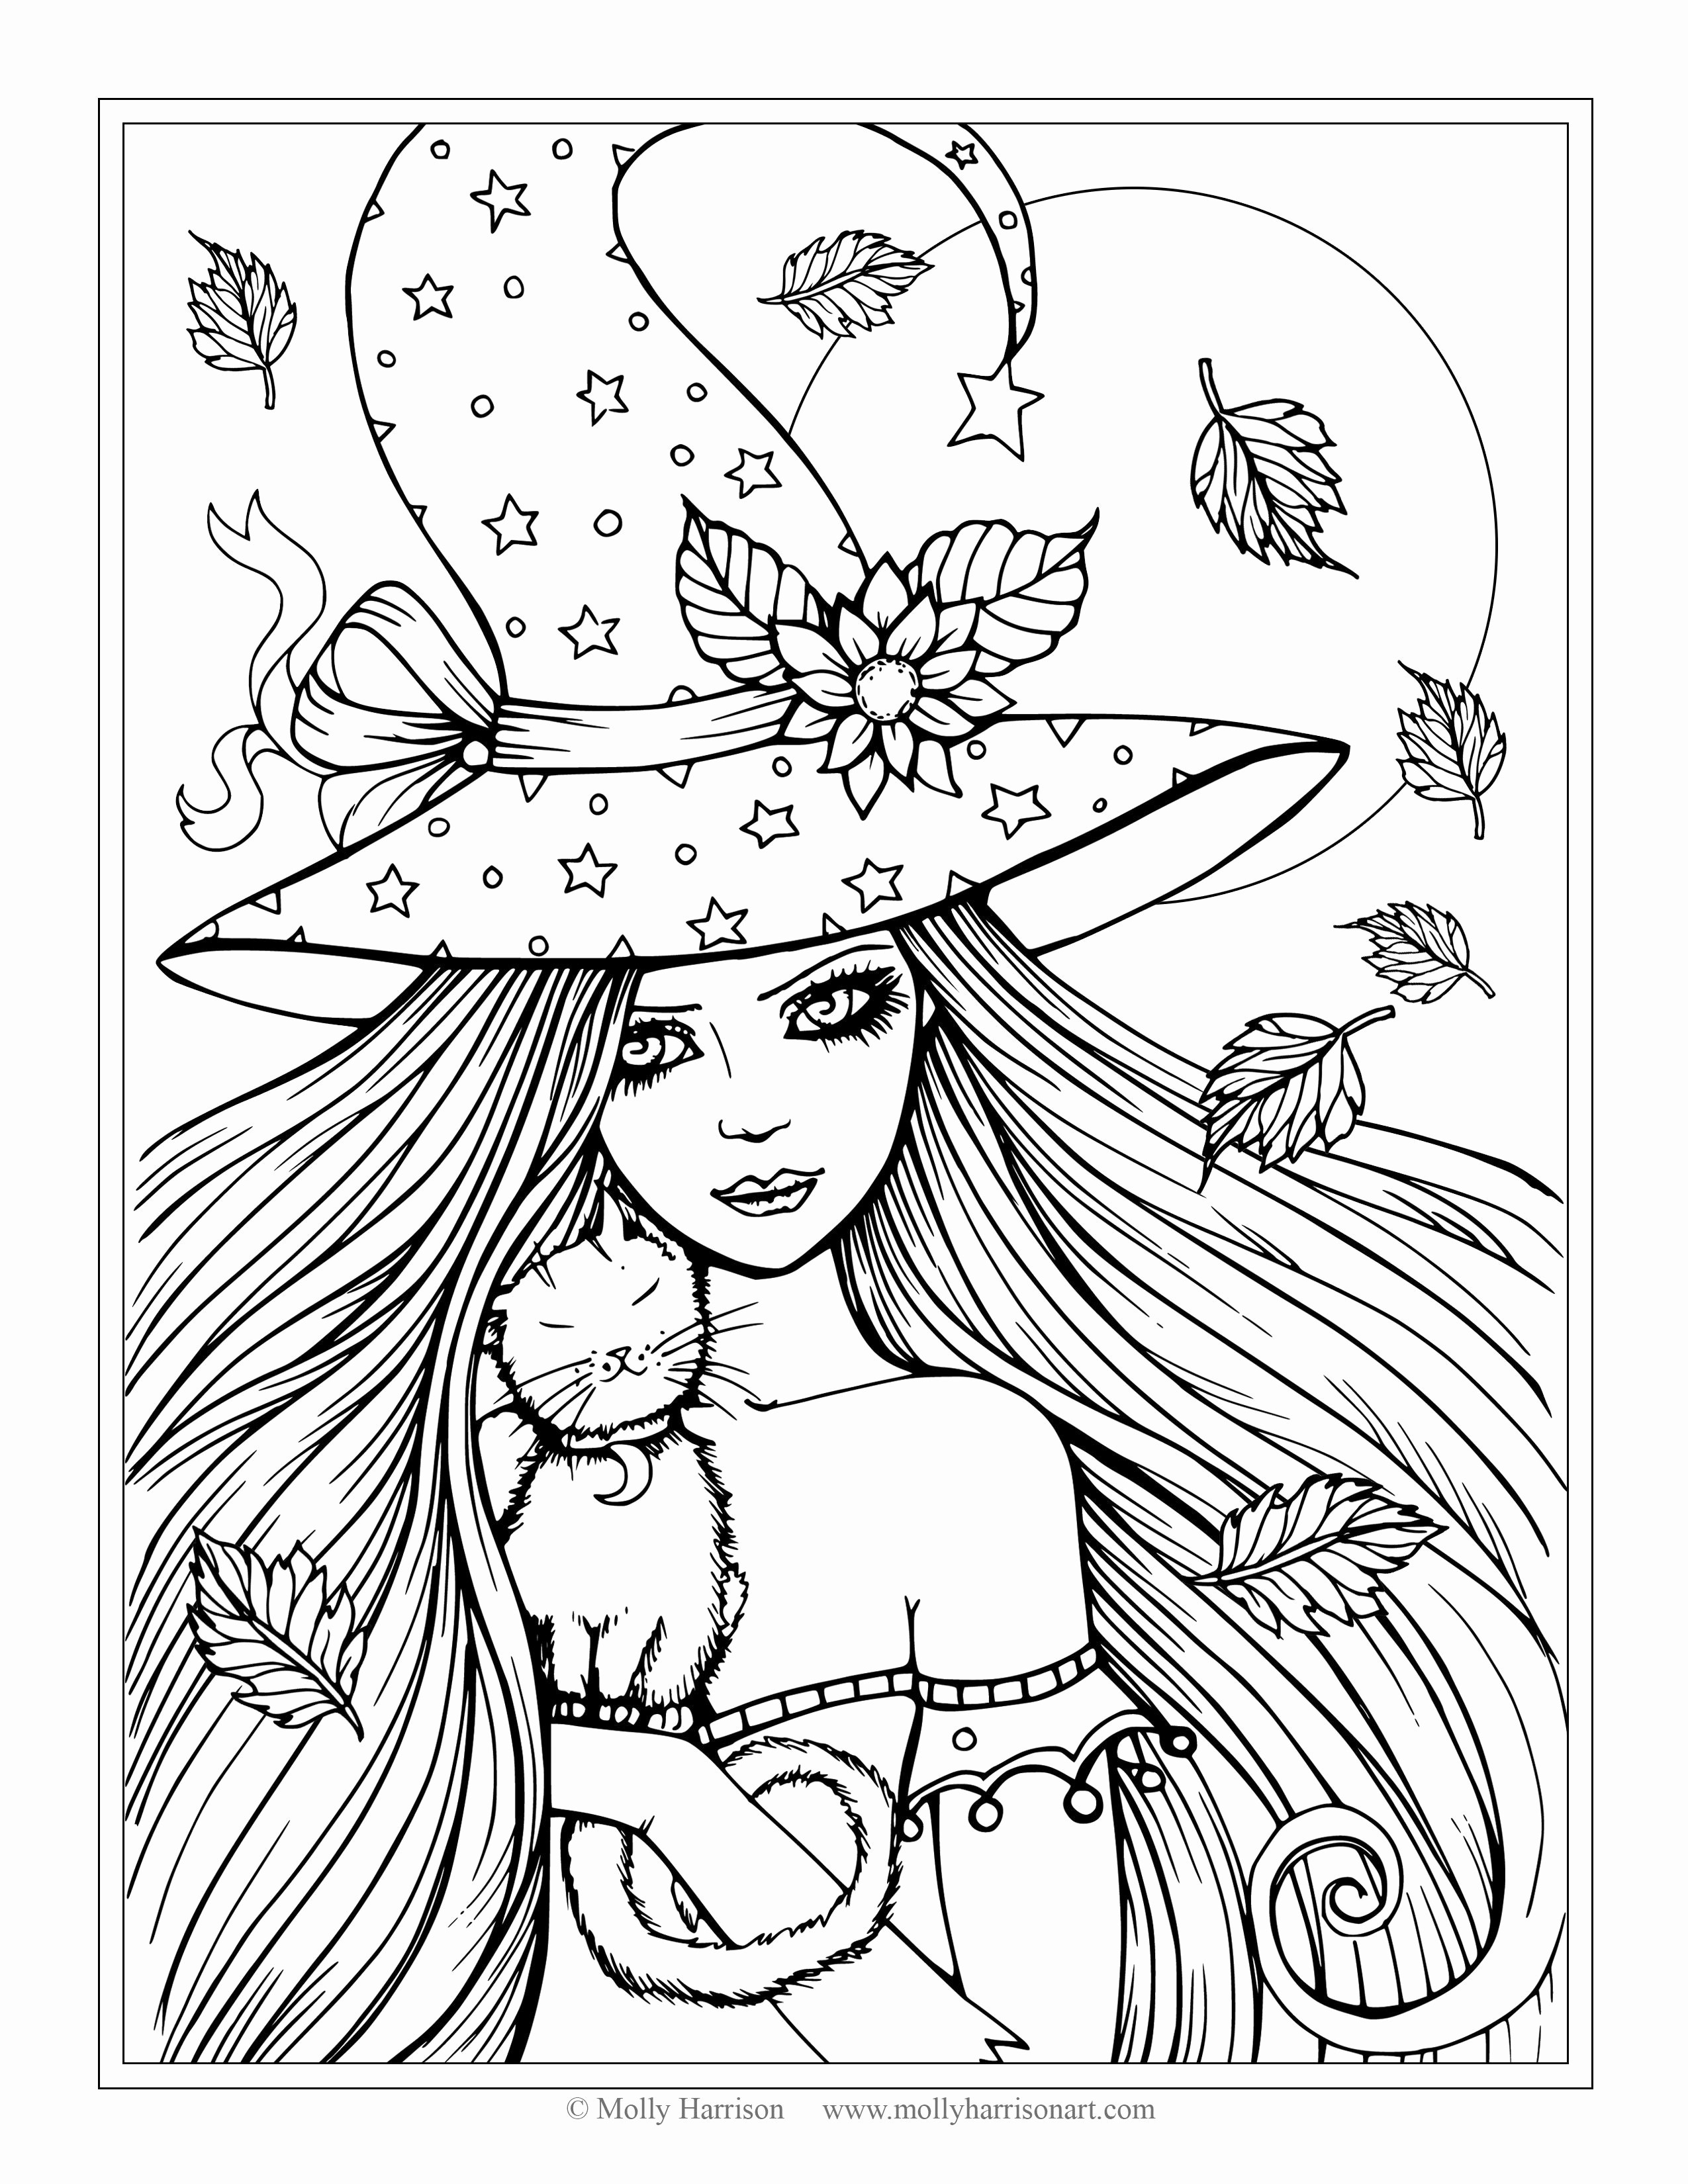 Children helping others coloring pages color sheets for children gallery summer fun coloring sheets free